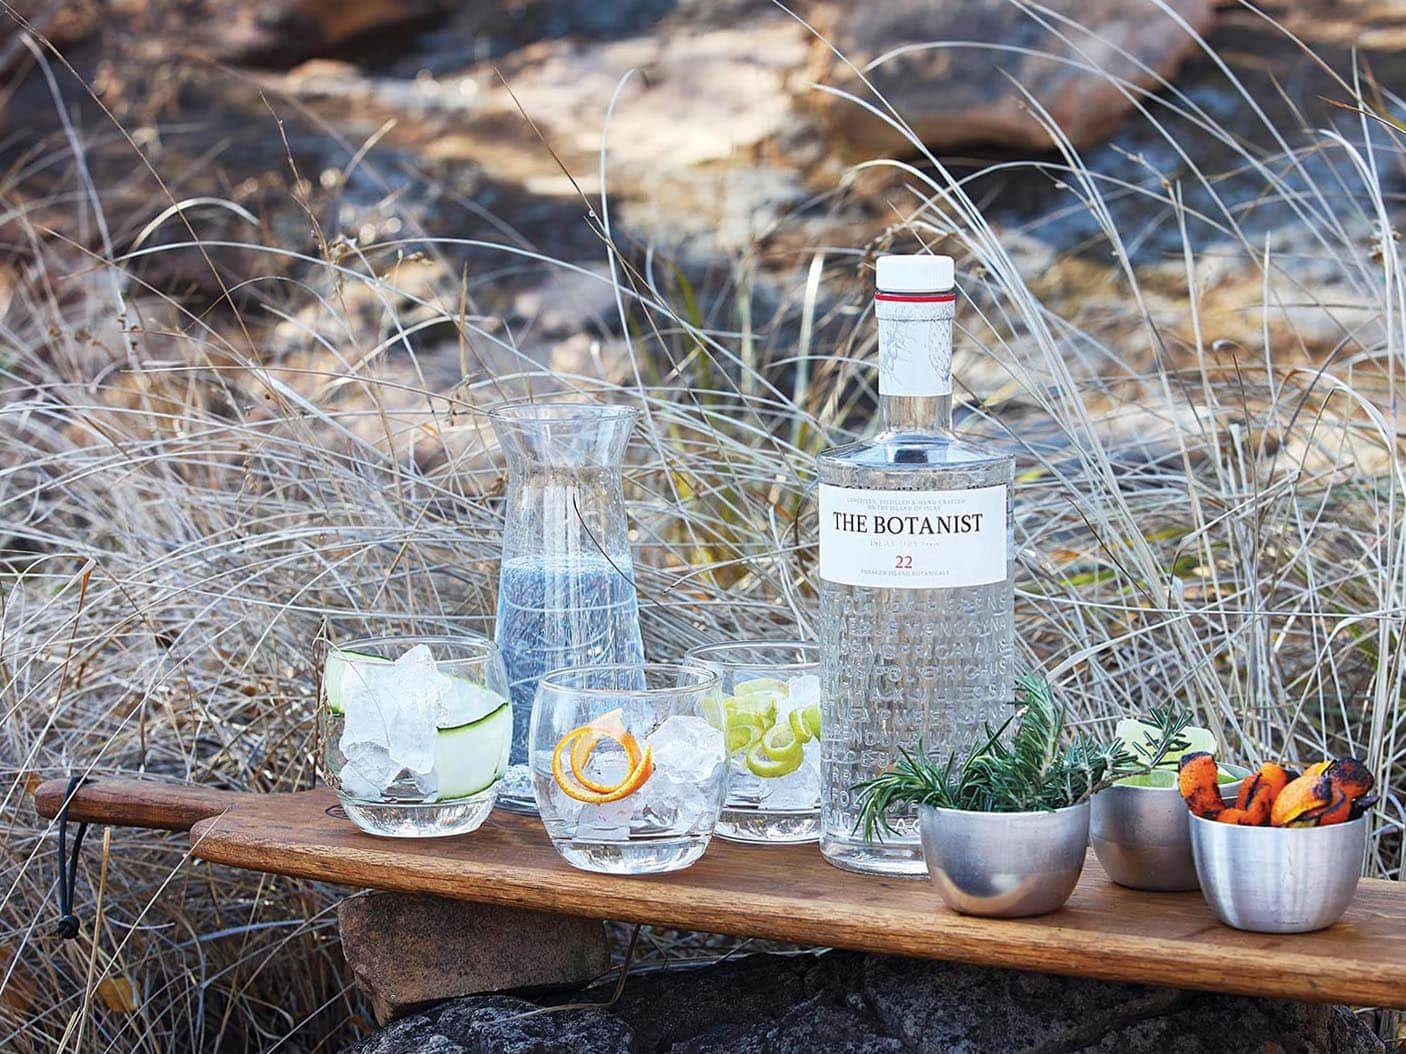 Drinking glasses and a bottle of The Botanist gin outdoors on a serving board. Photo by Elsa Young Photography.